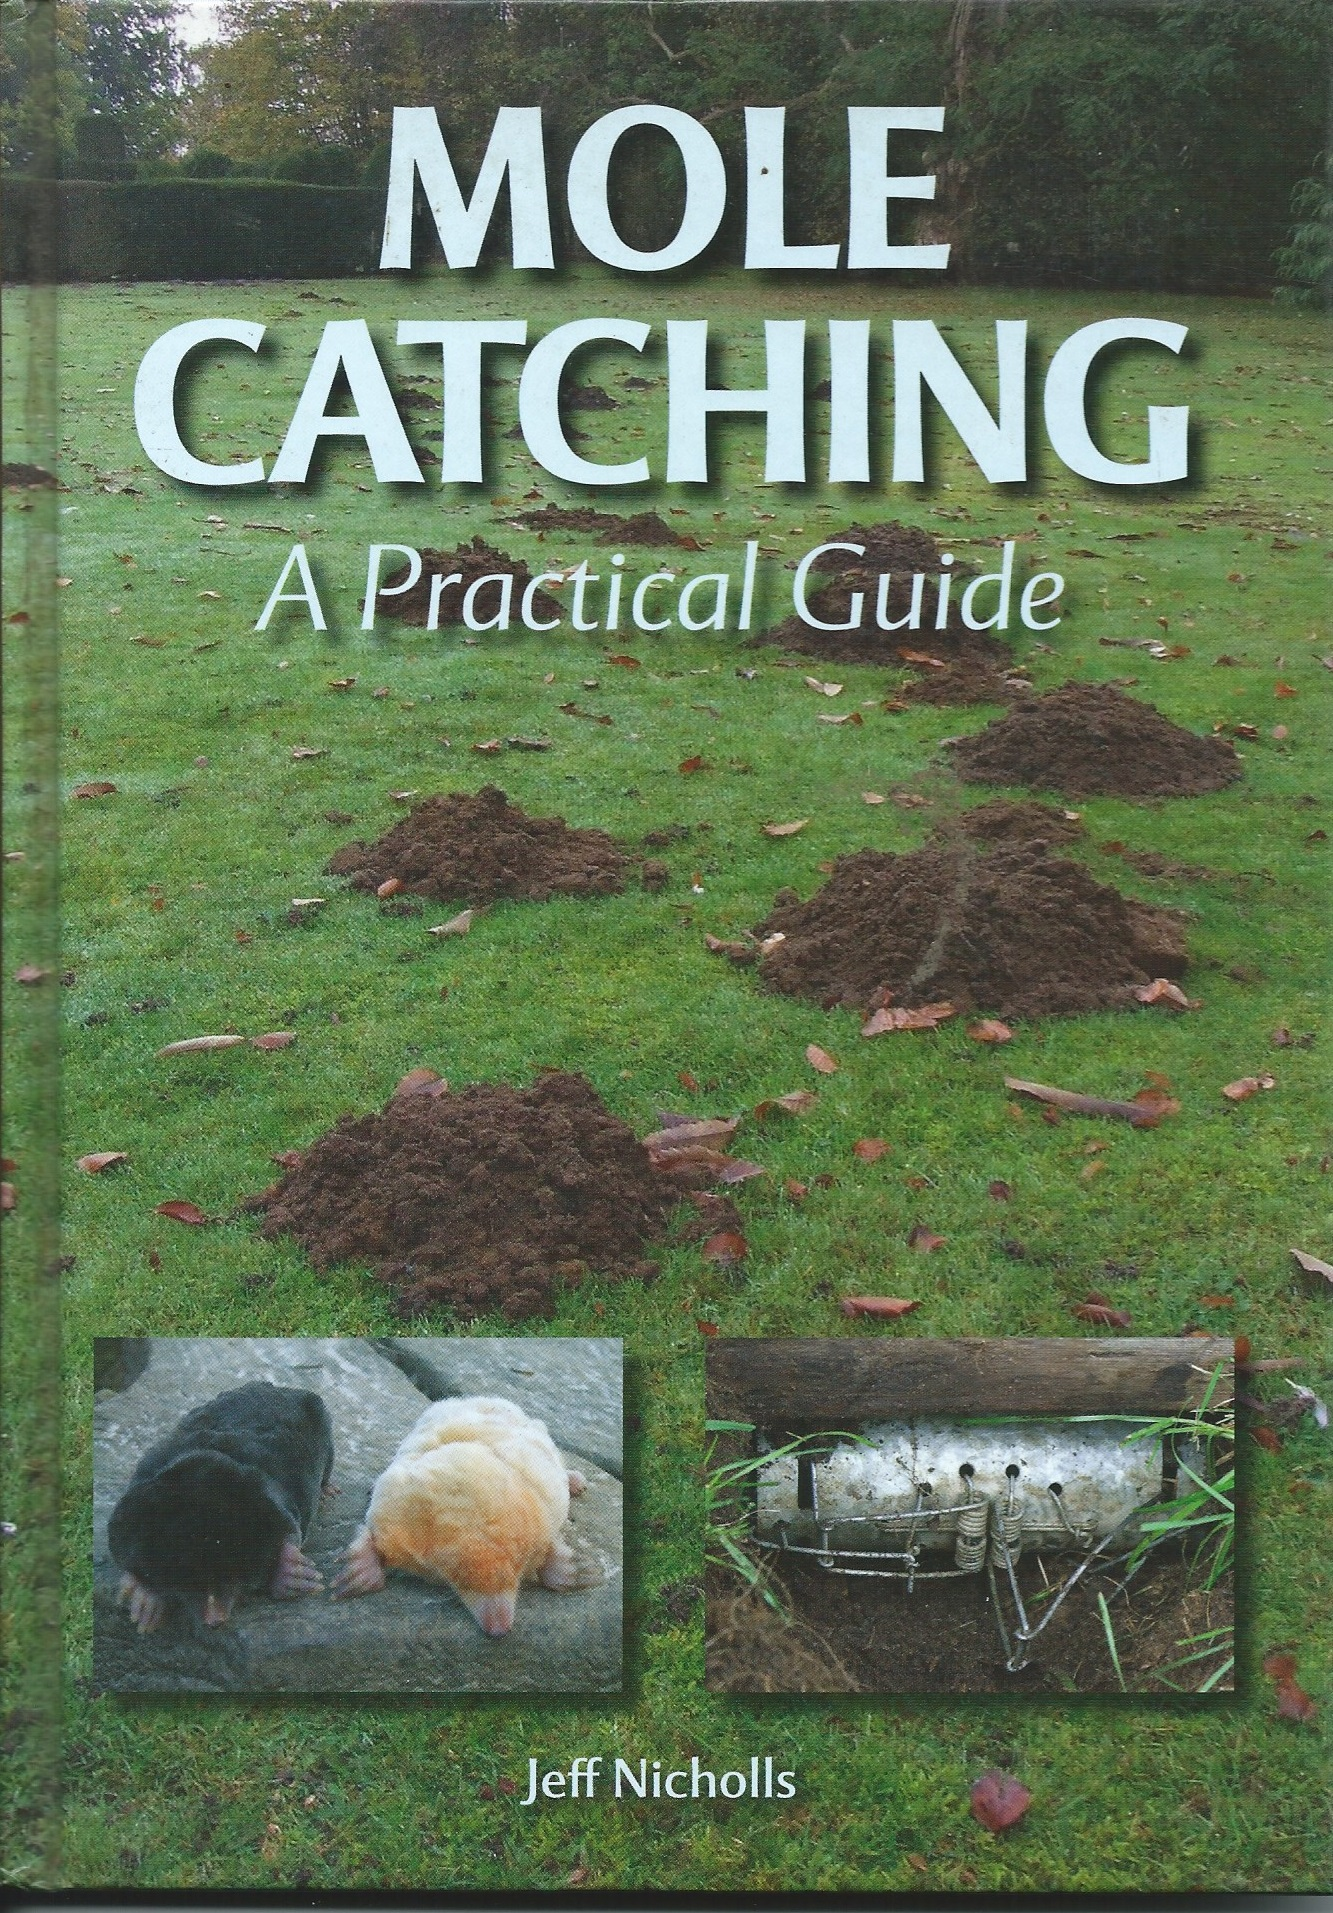 Mole Control Book - Mole Catching